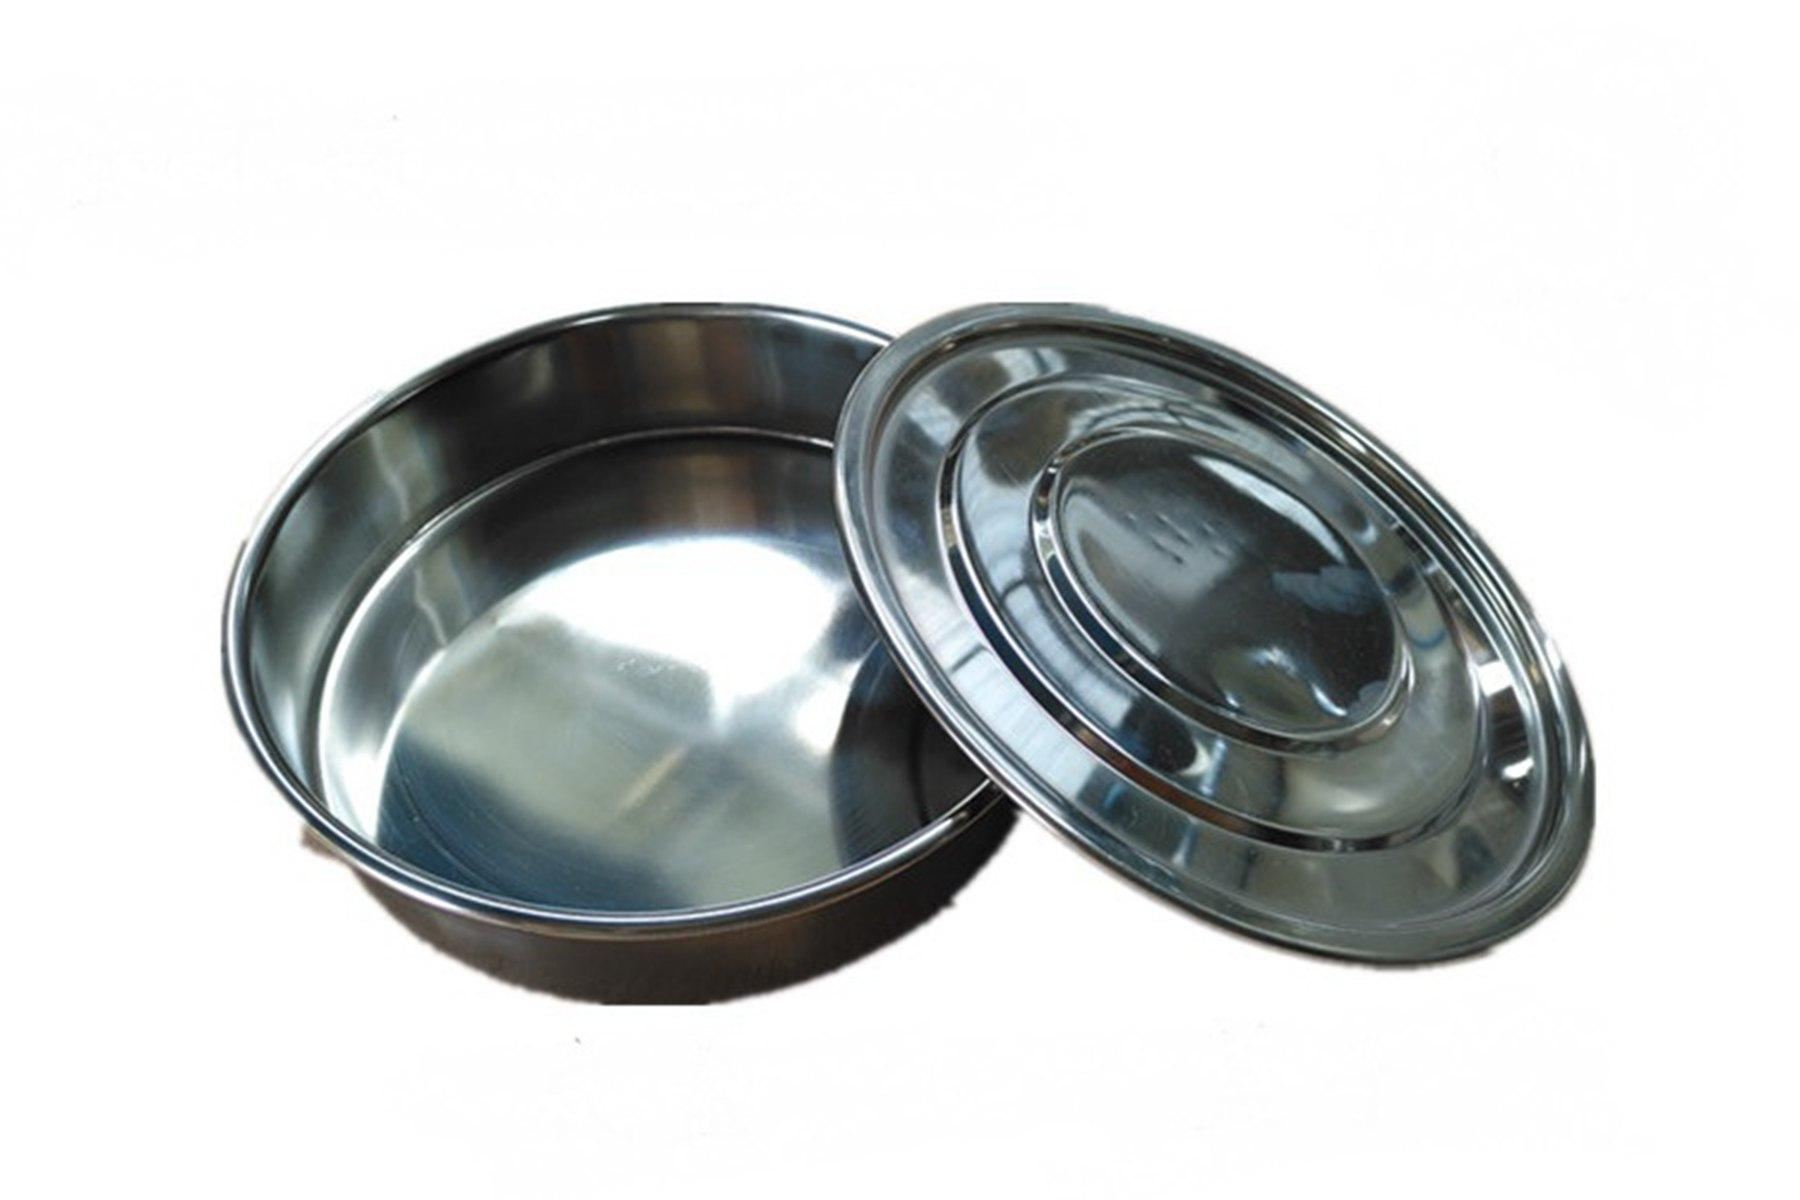 Diameter 20cm Stainless Steel Lid And Bottom Test Sieve Standard Test Sieve Laboratory Sieve